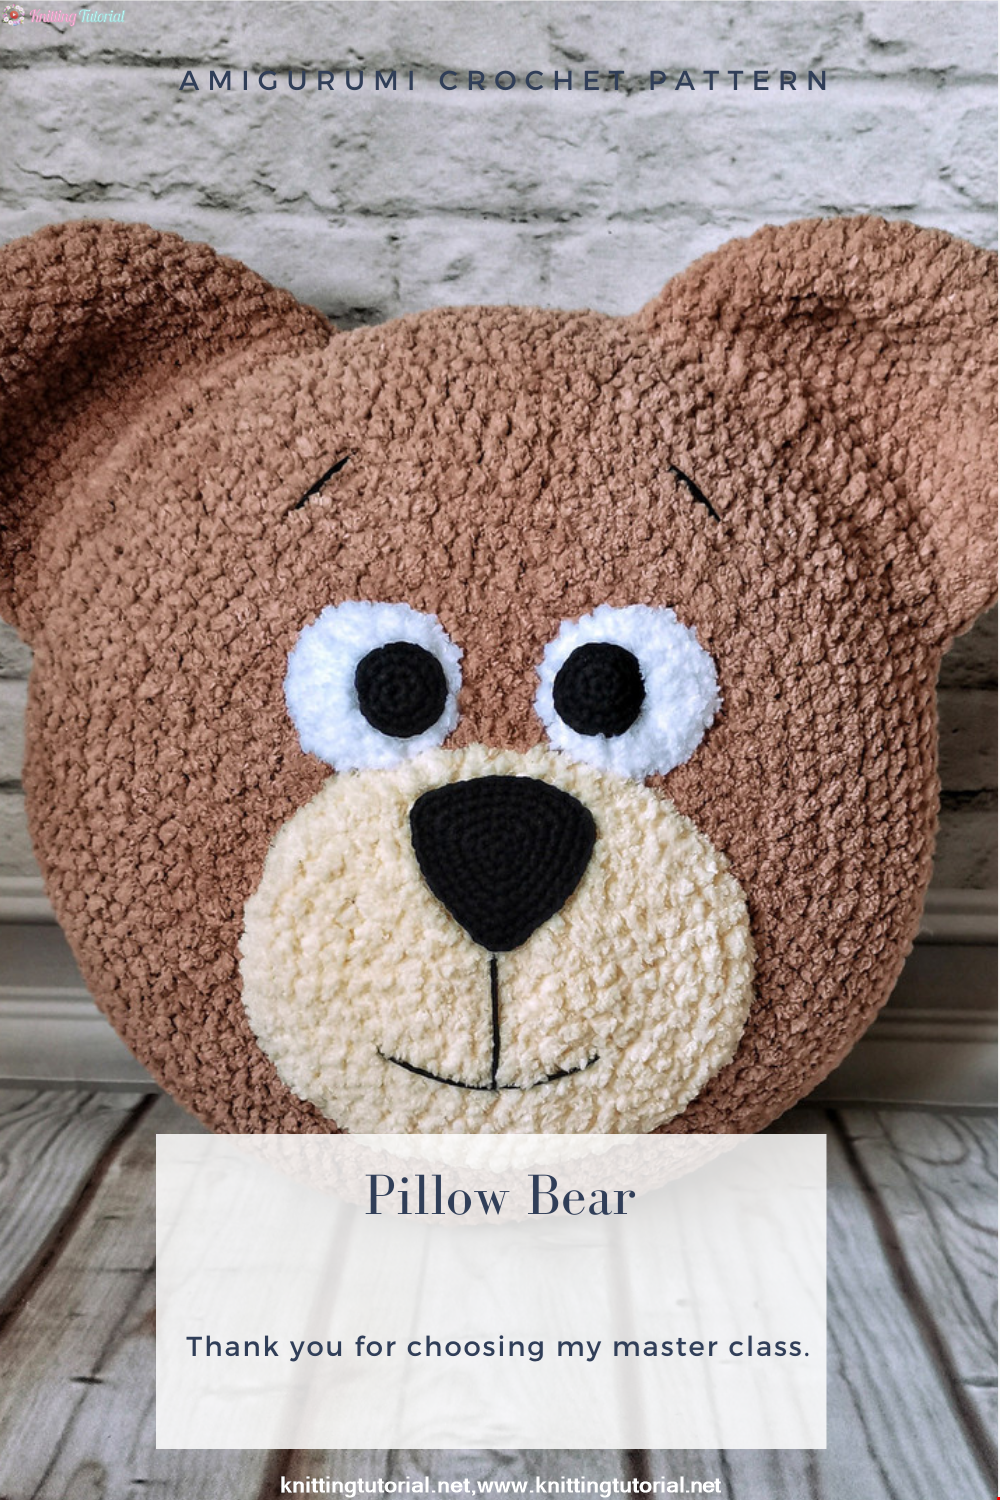 Amigurumi Bear Pillow Crochet Pattern